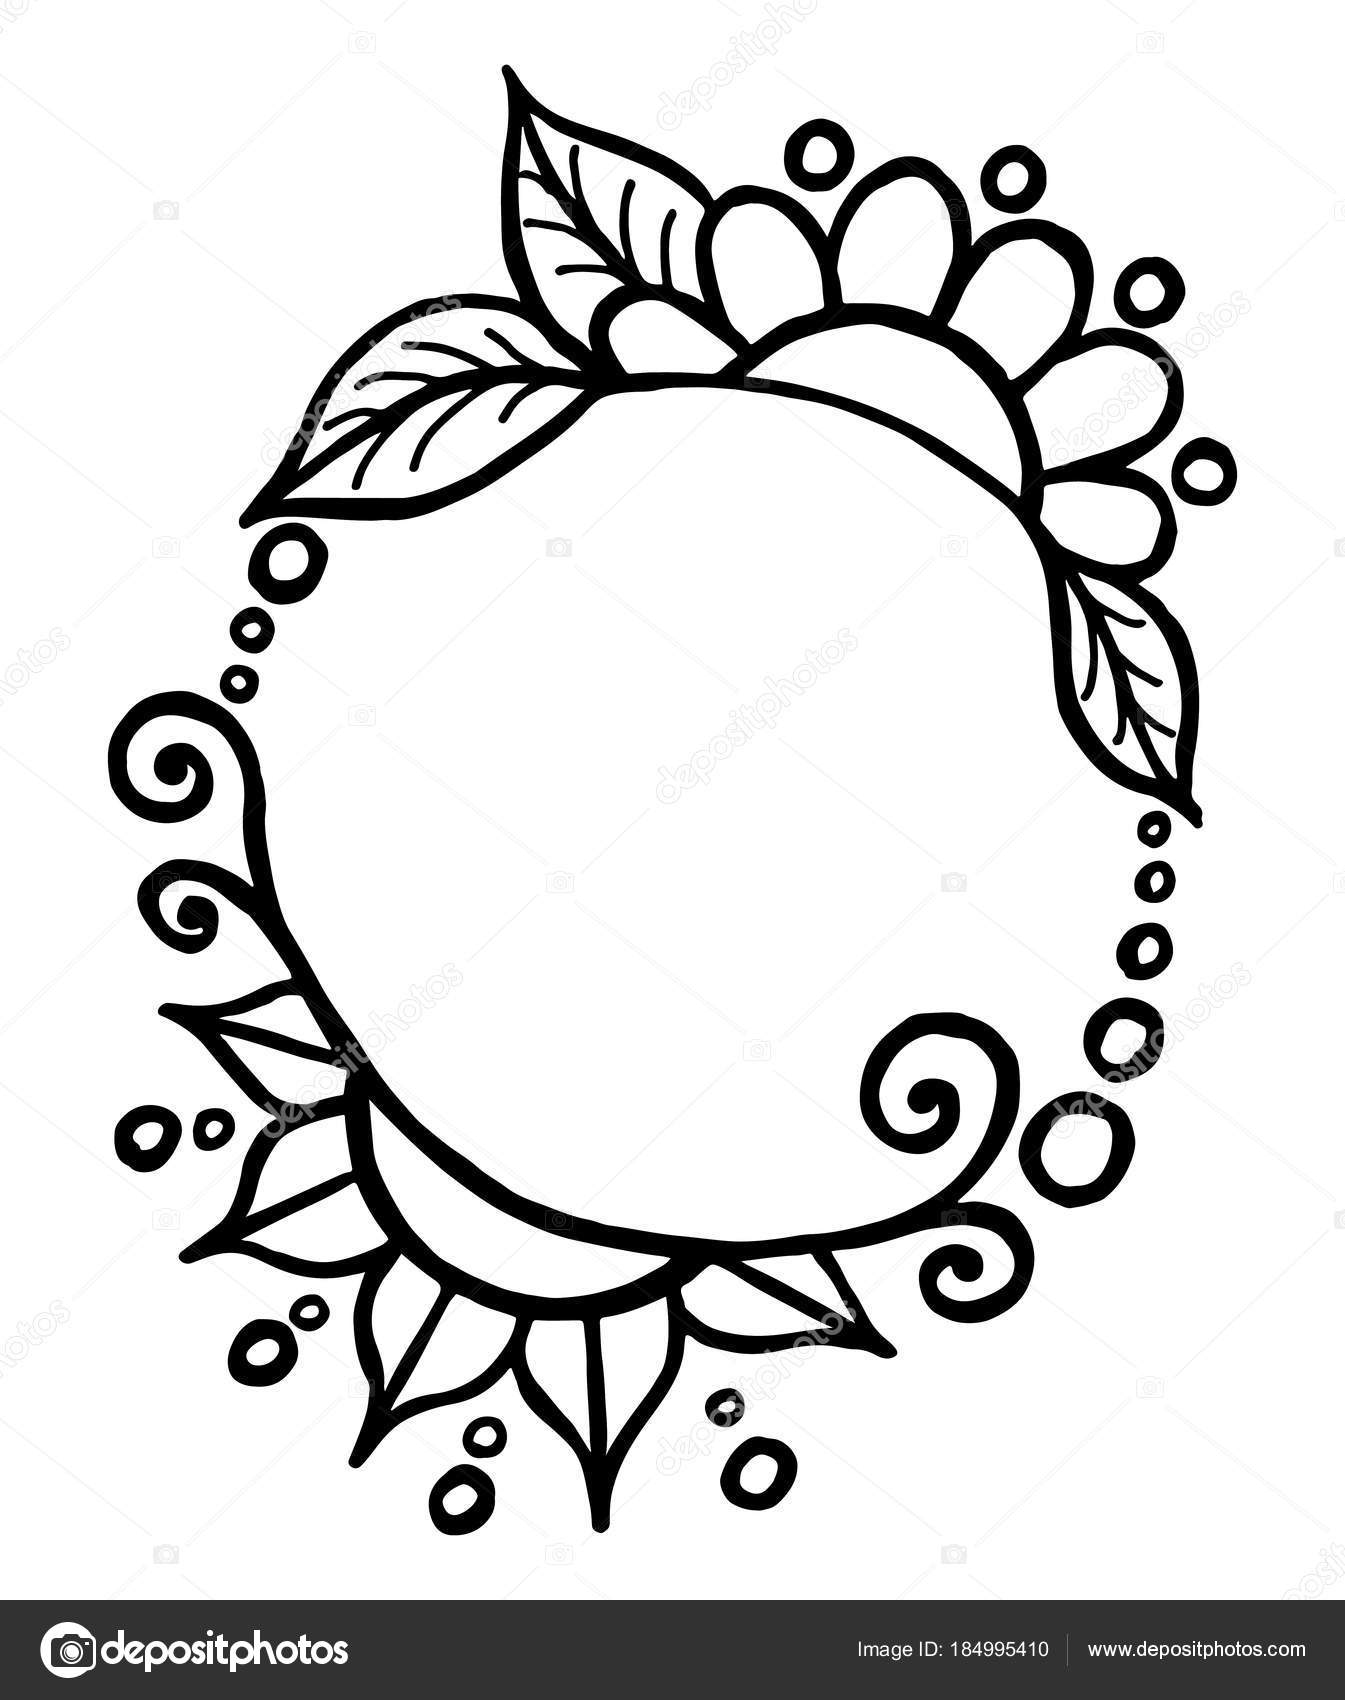 Round simple black black drawn vector frame with flowers and cur round drawn simple black and white vector frame with flowers and curls with place for your tex vector by annymax mightylinksfo